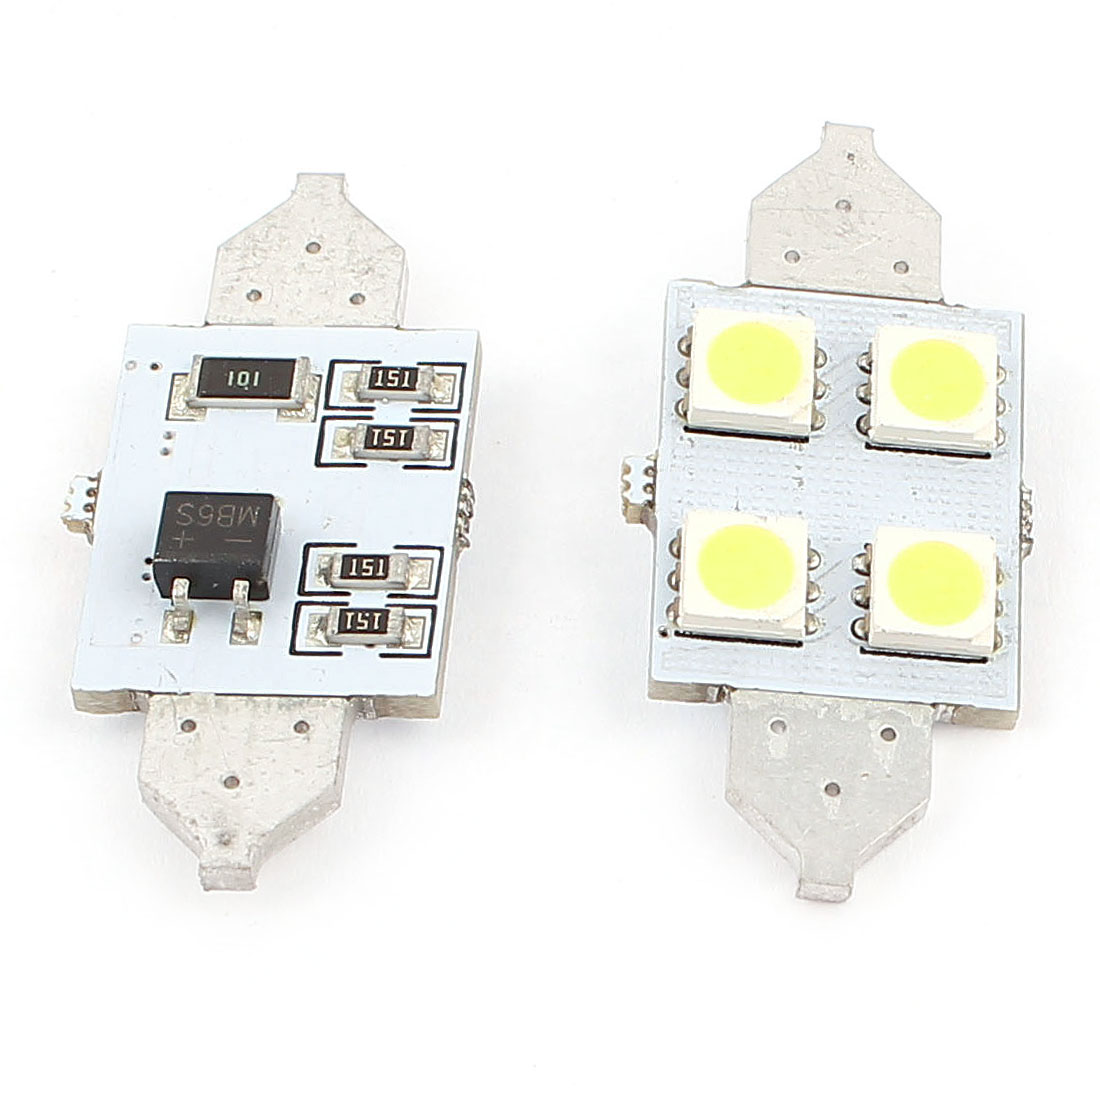 2 Pcs 36mm 4 LED 5050 SMD White Dome Festoon Car Light Lamp 3022 DE3175 Internal